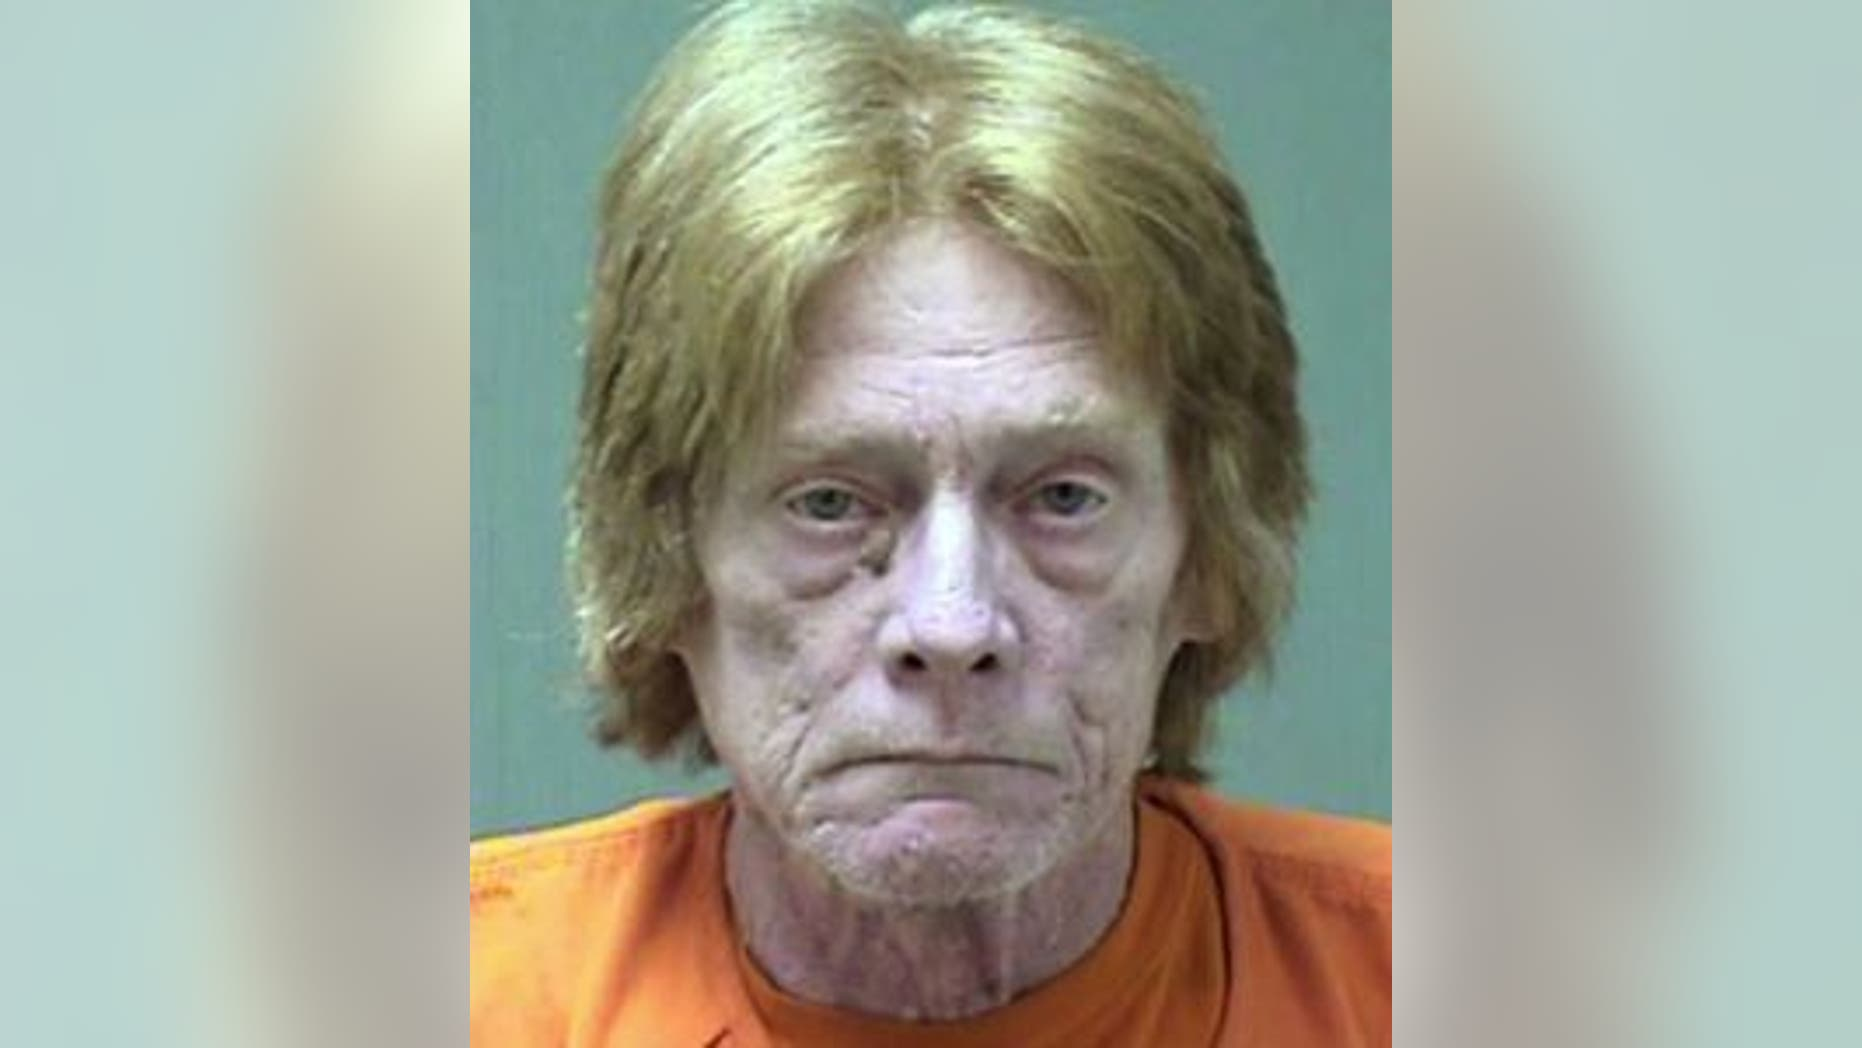 """Terry Hibbard, 60, of Grafton, Wis., admitted driving his 32-year-old daughter, Taralyn, to buy heroin """"once or twice a week,"""" authorities say."""